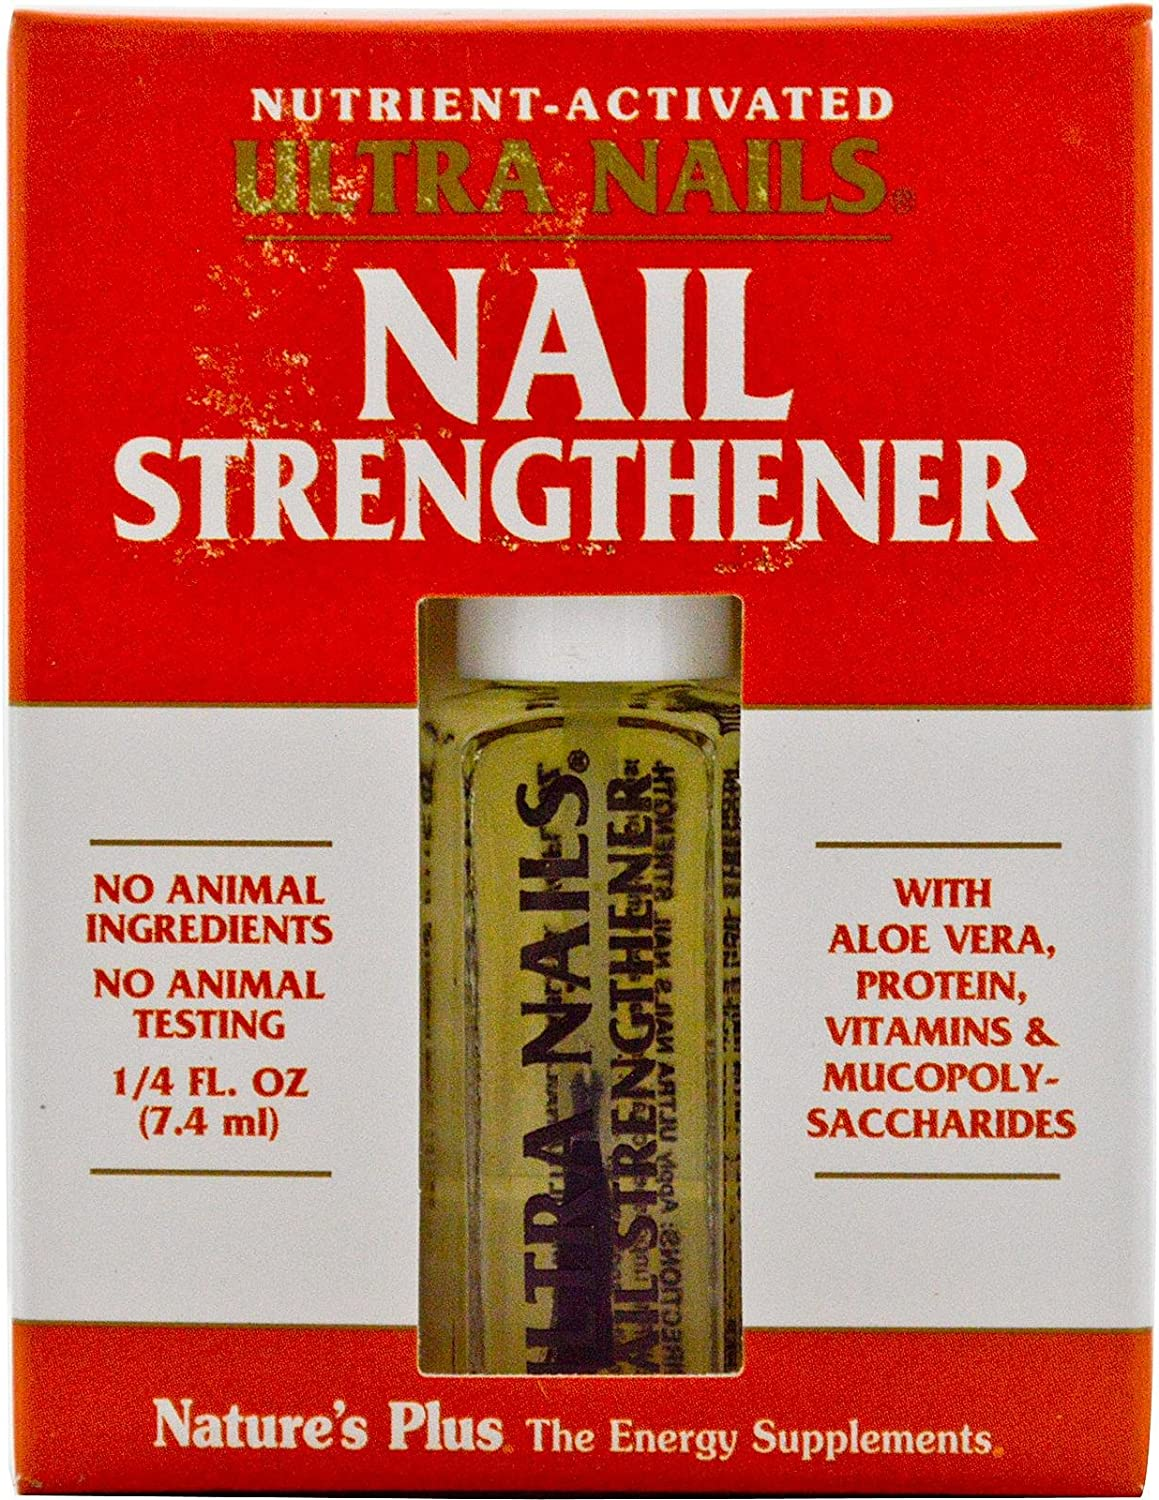 NaturesPlus Ultra Nails Nutrient-Activated Strengthener - .25 fl oz - Naturally Strengthens Nails & Cuticles - Conditions Nails with Aloe, Calendula, Vitamins & Protein - Formaldehyde Free, Vegan